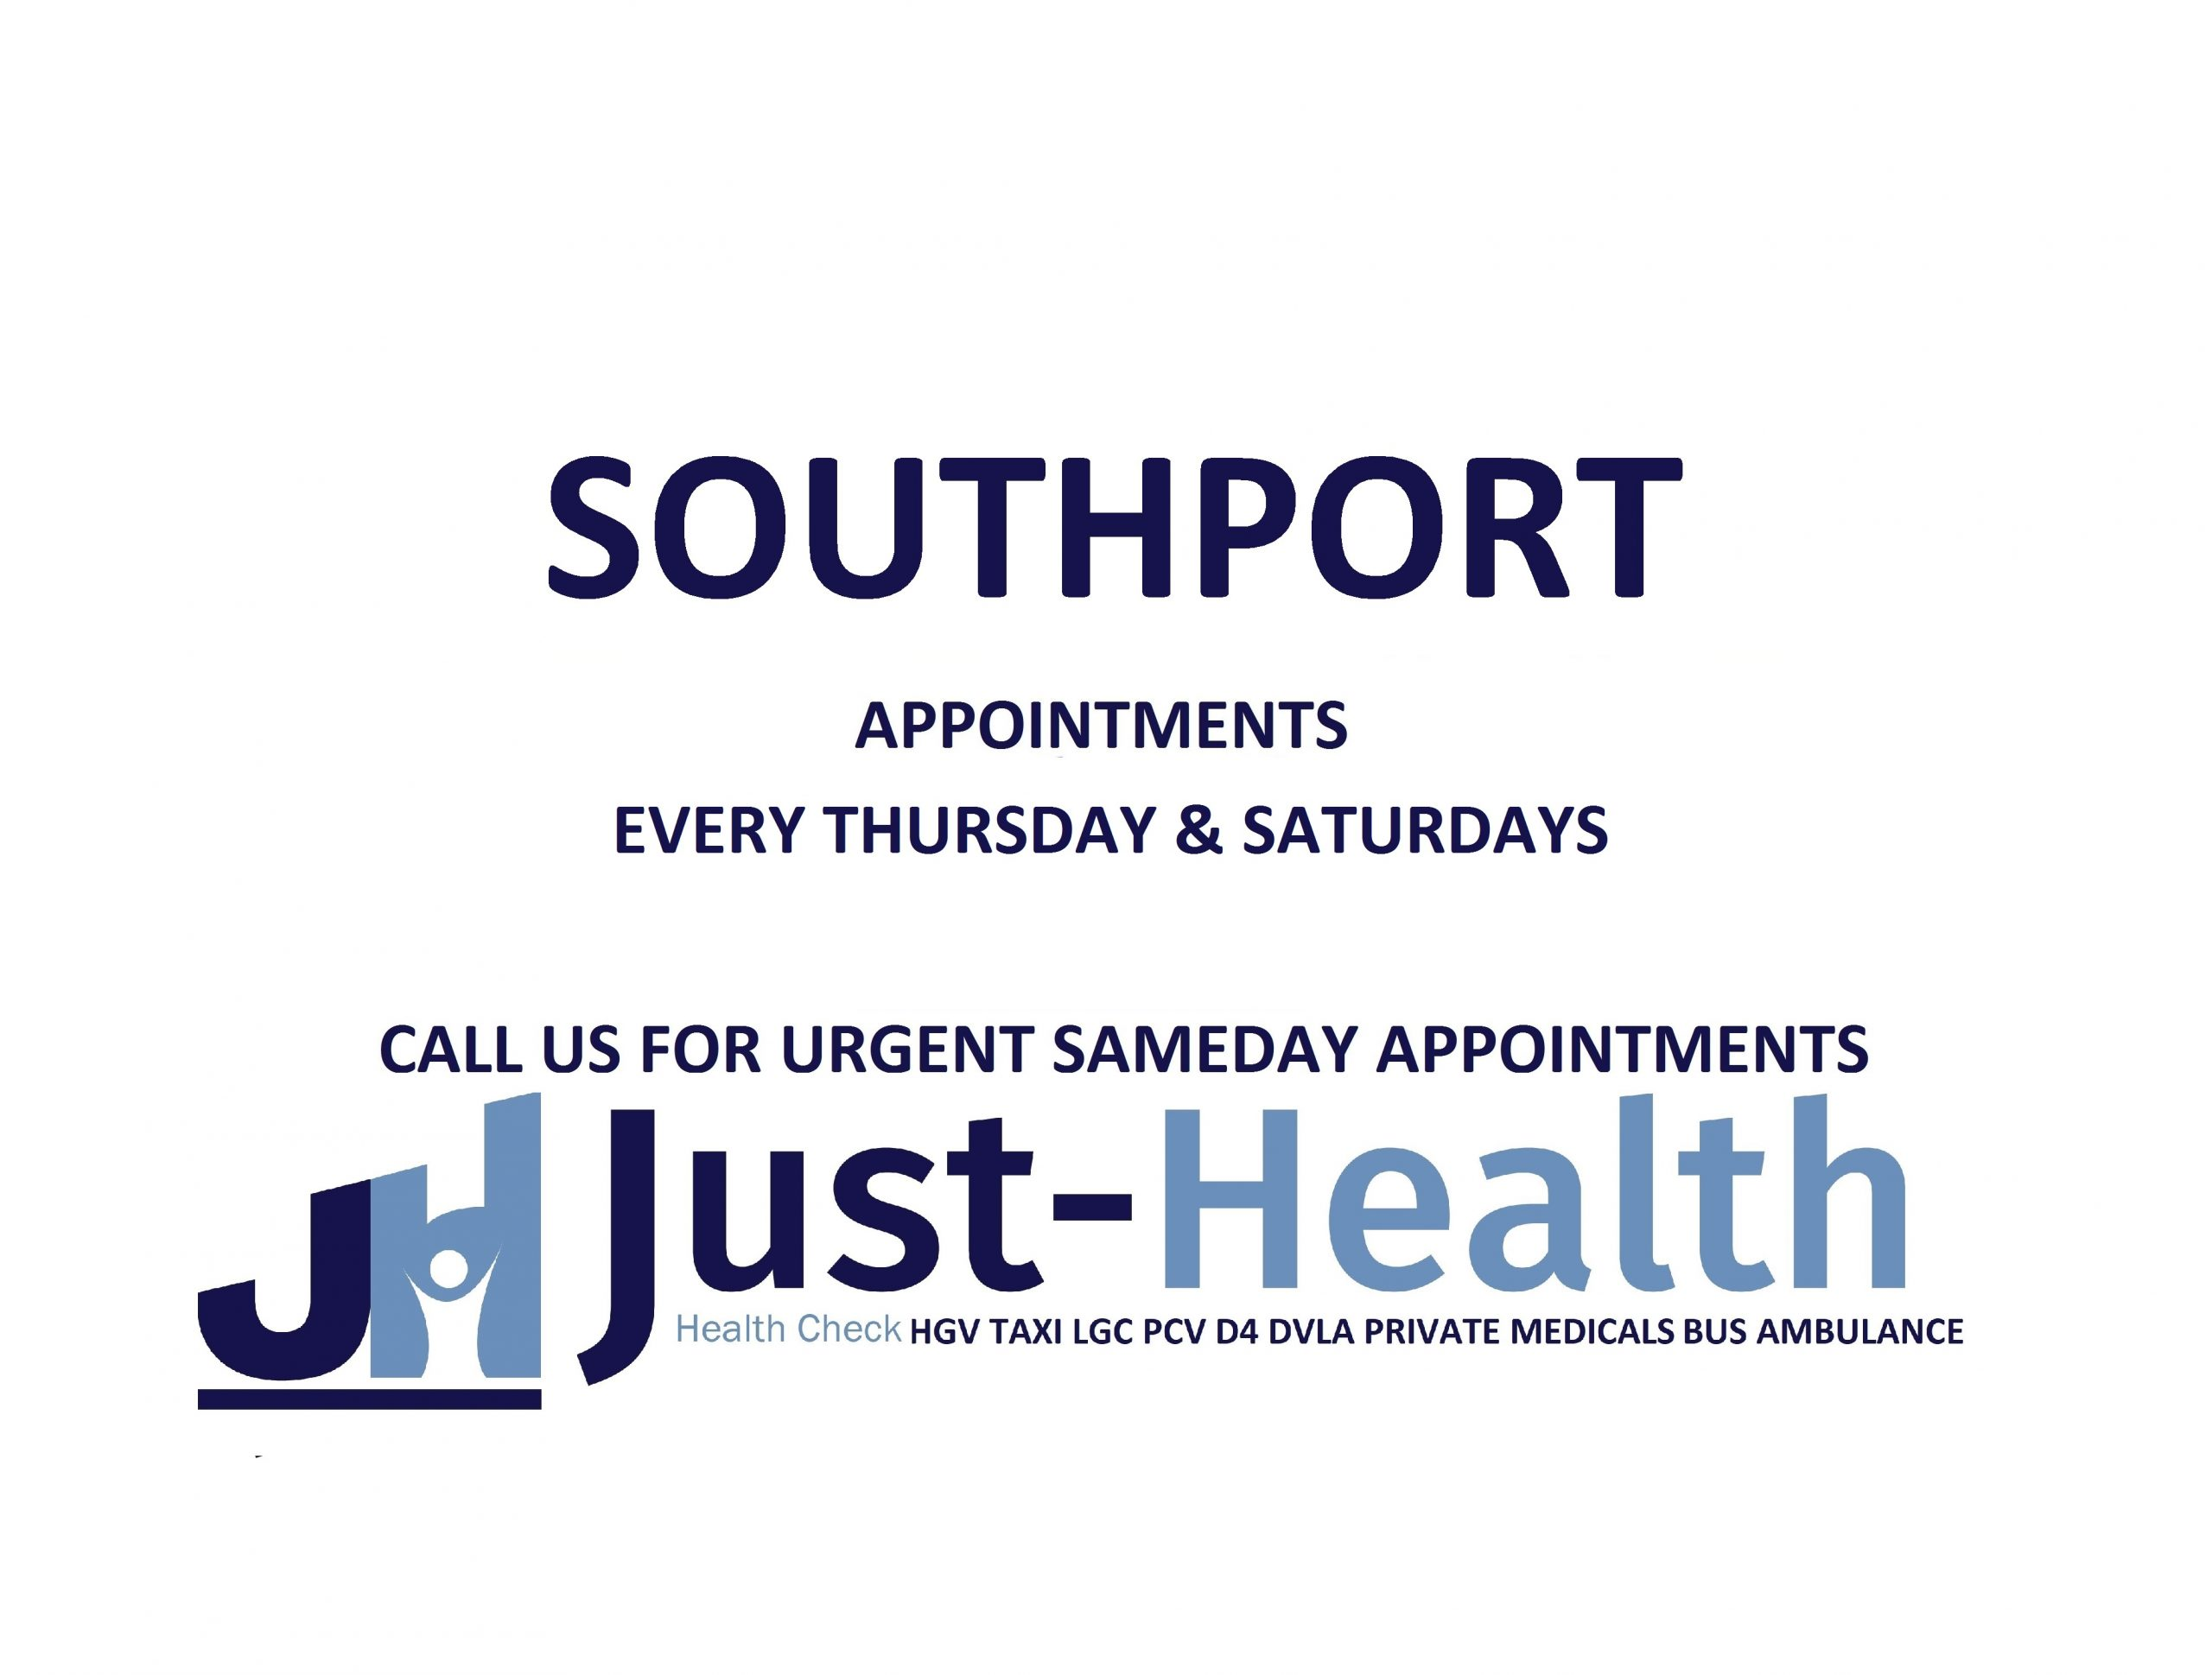 d4 HGV PSV LGV Taxi Pcv medical just health clinic southport